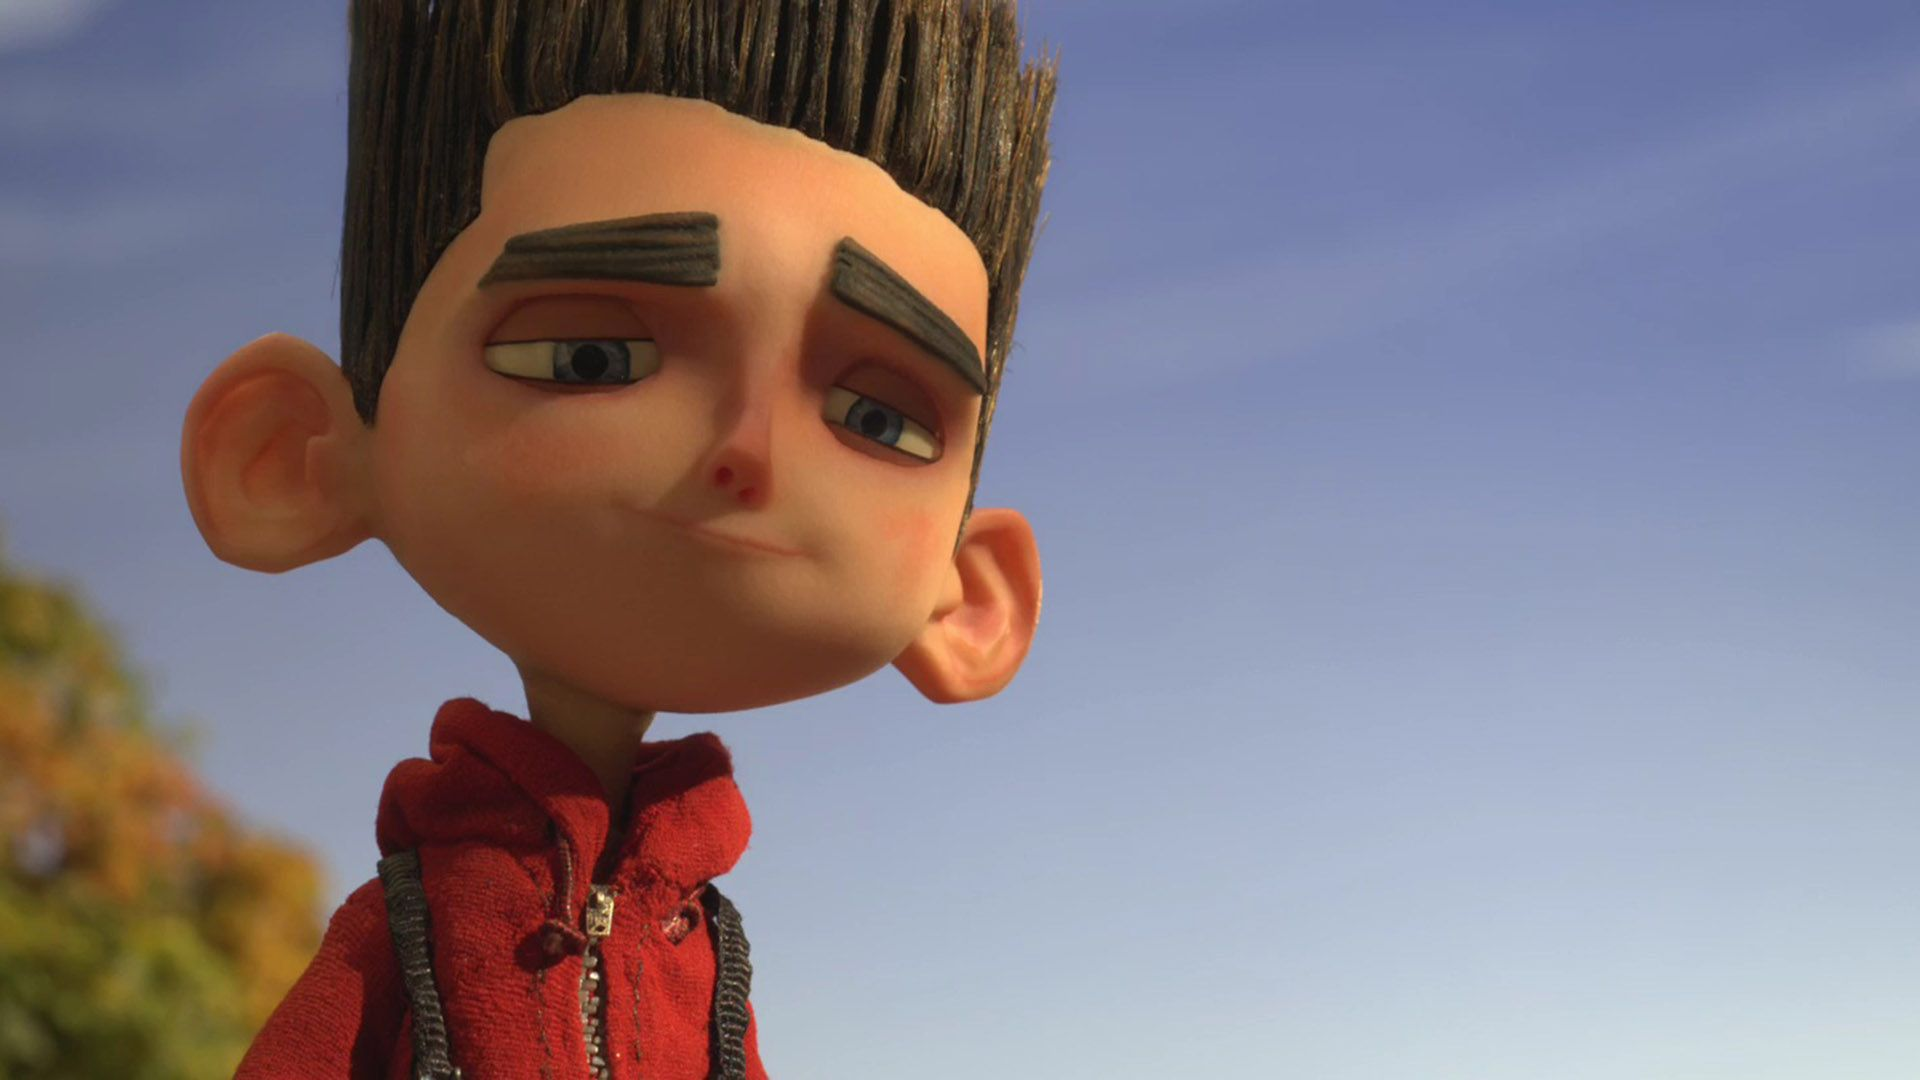 Paranorman Wallpapers Profile Pictures Instagram Iconic Movies Stop Motion